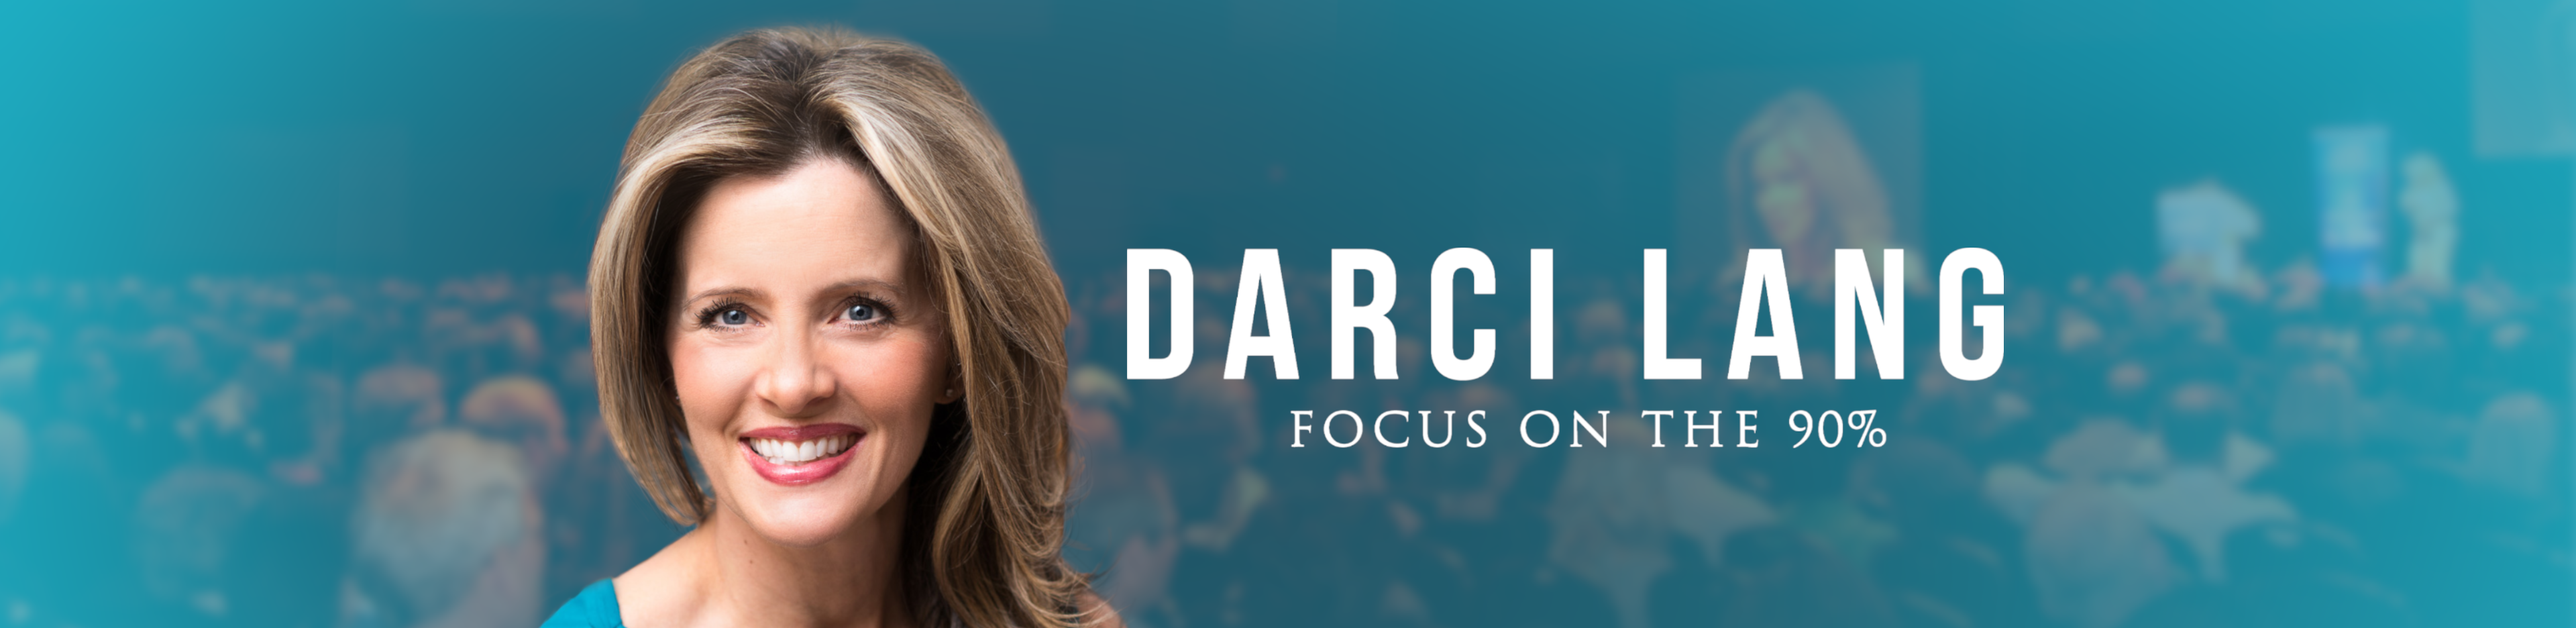 Darci Lang Focus on the 90%